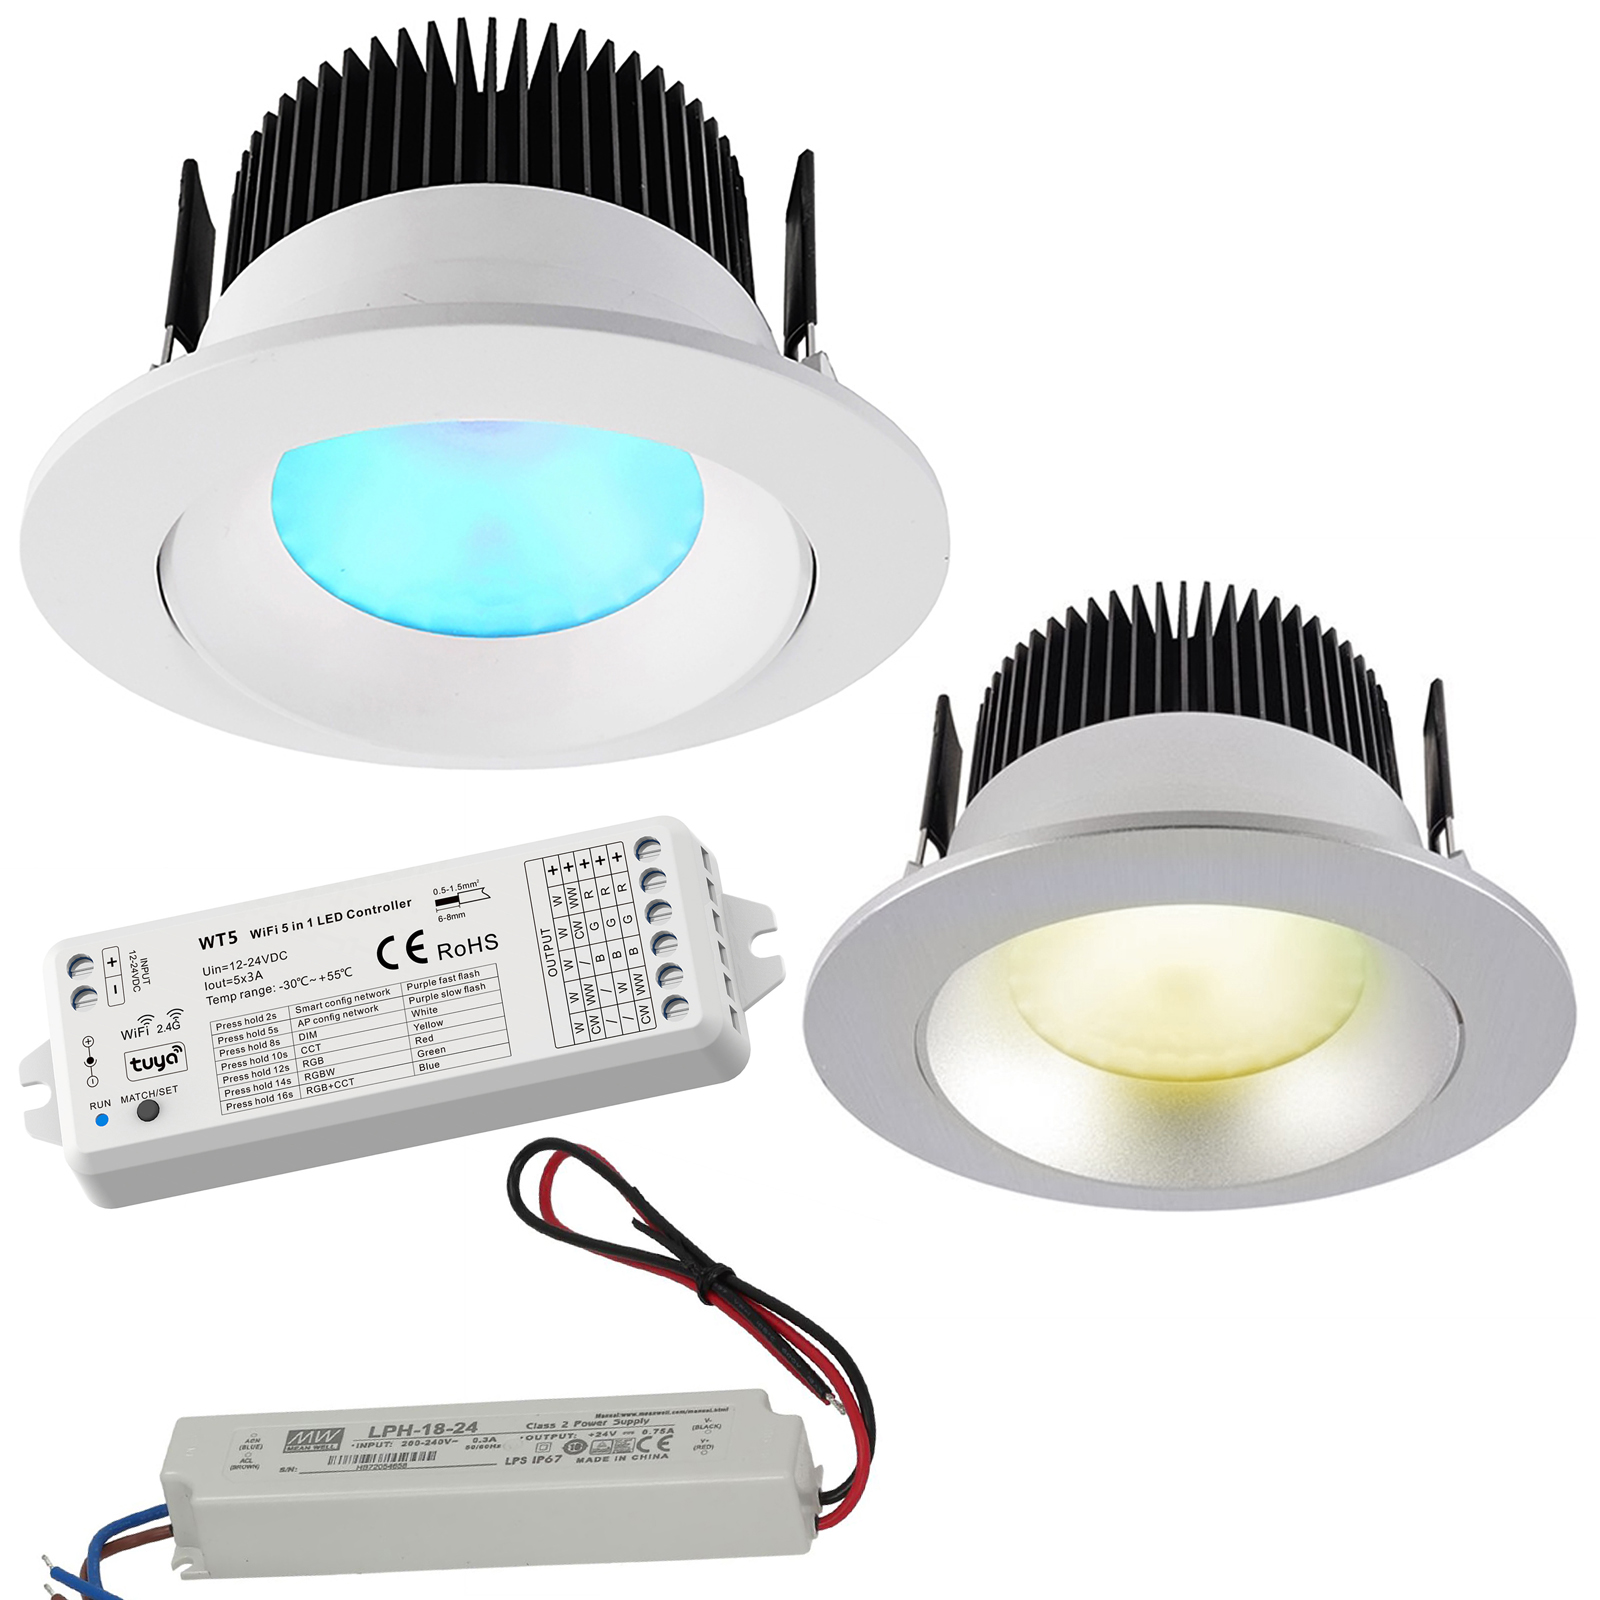 KIT cromoterapia faretto centralina WiFi LED 16W RGB 3000K 24V incasso 94mm luce colorata box doccia Alexa Google